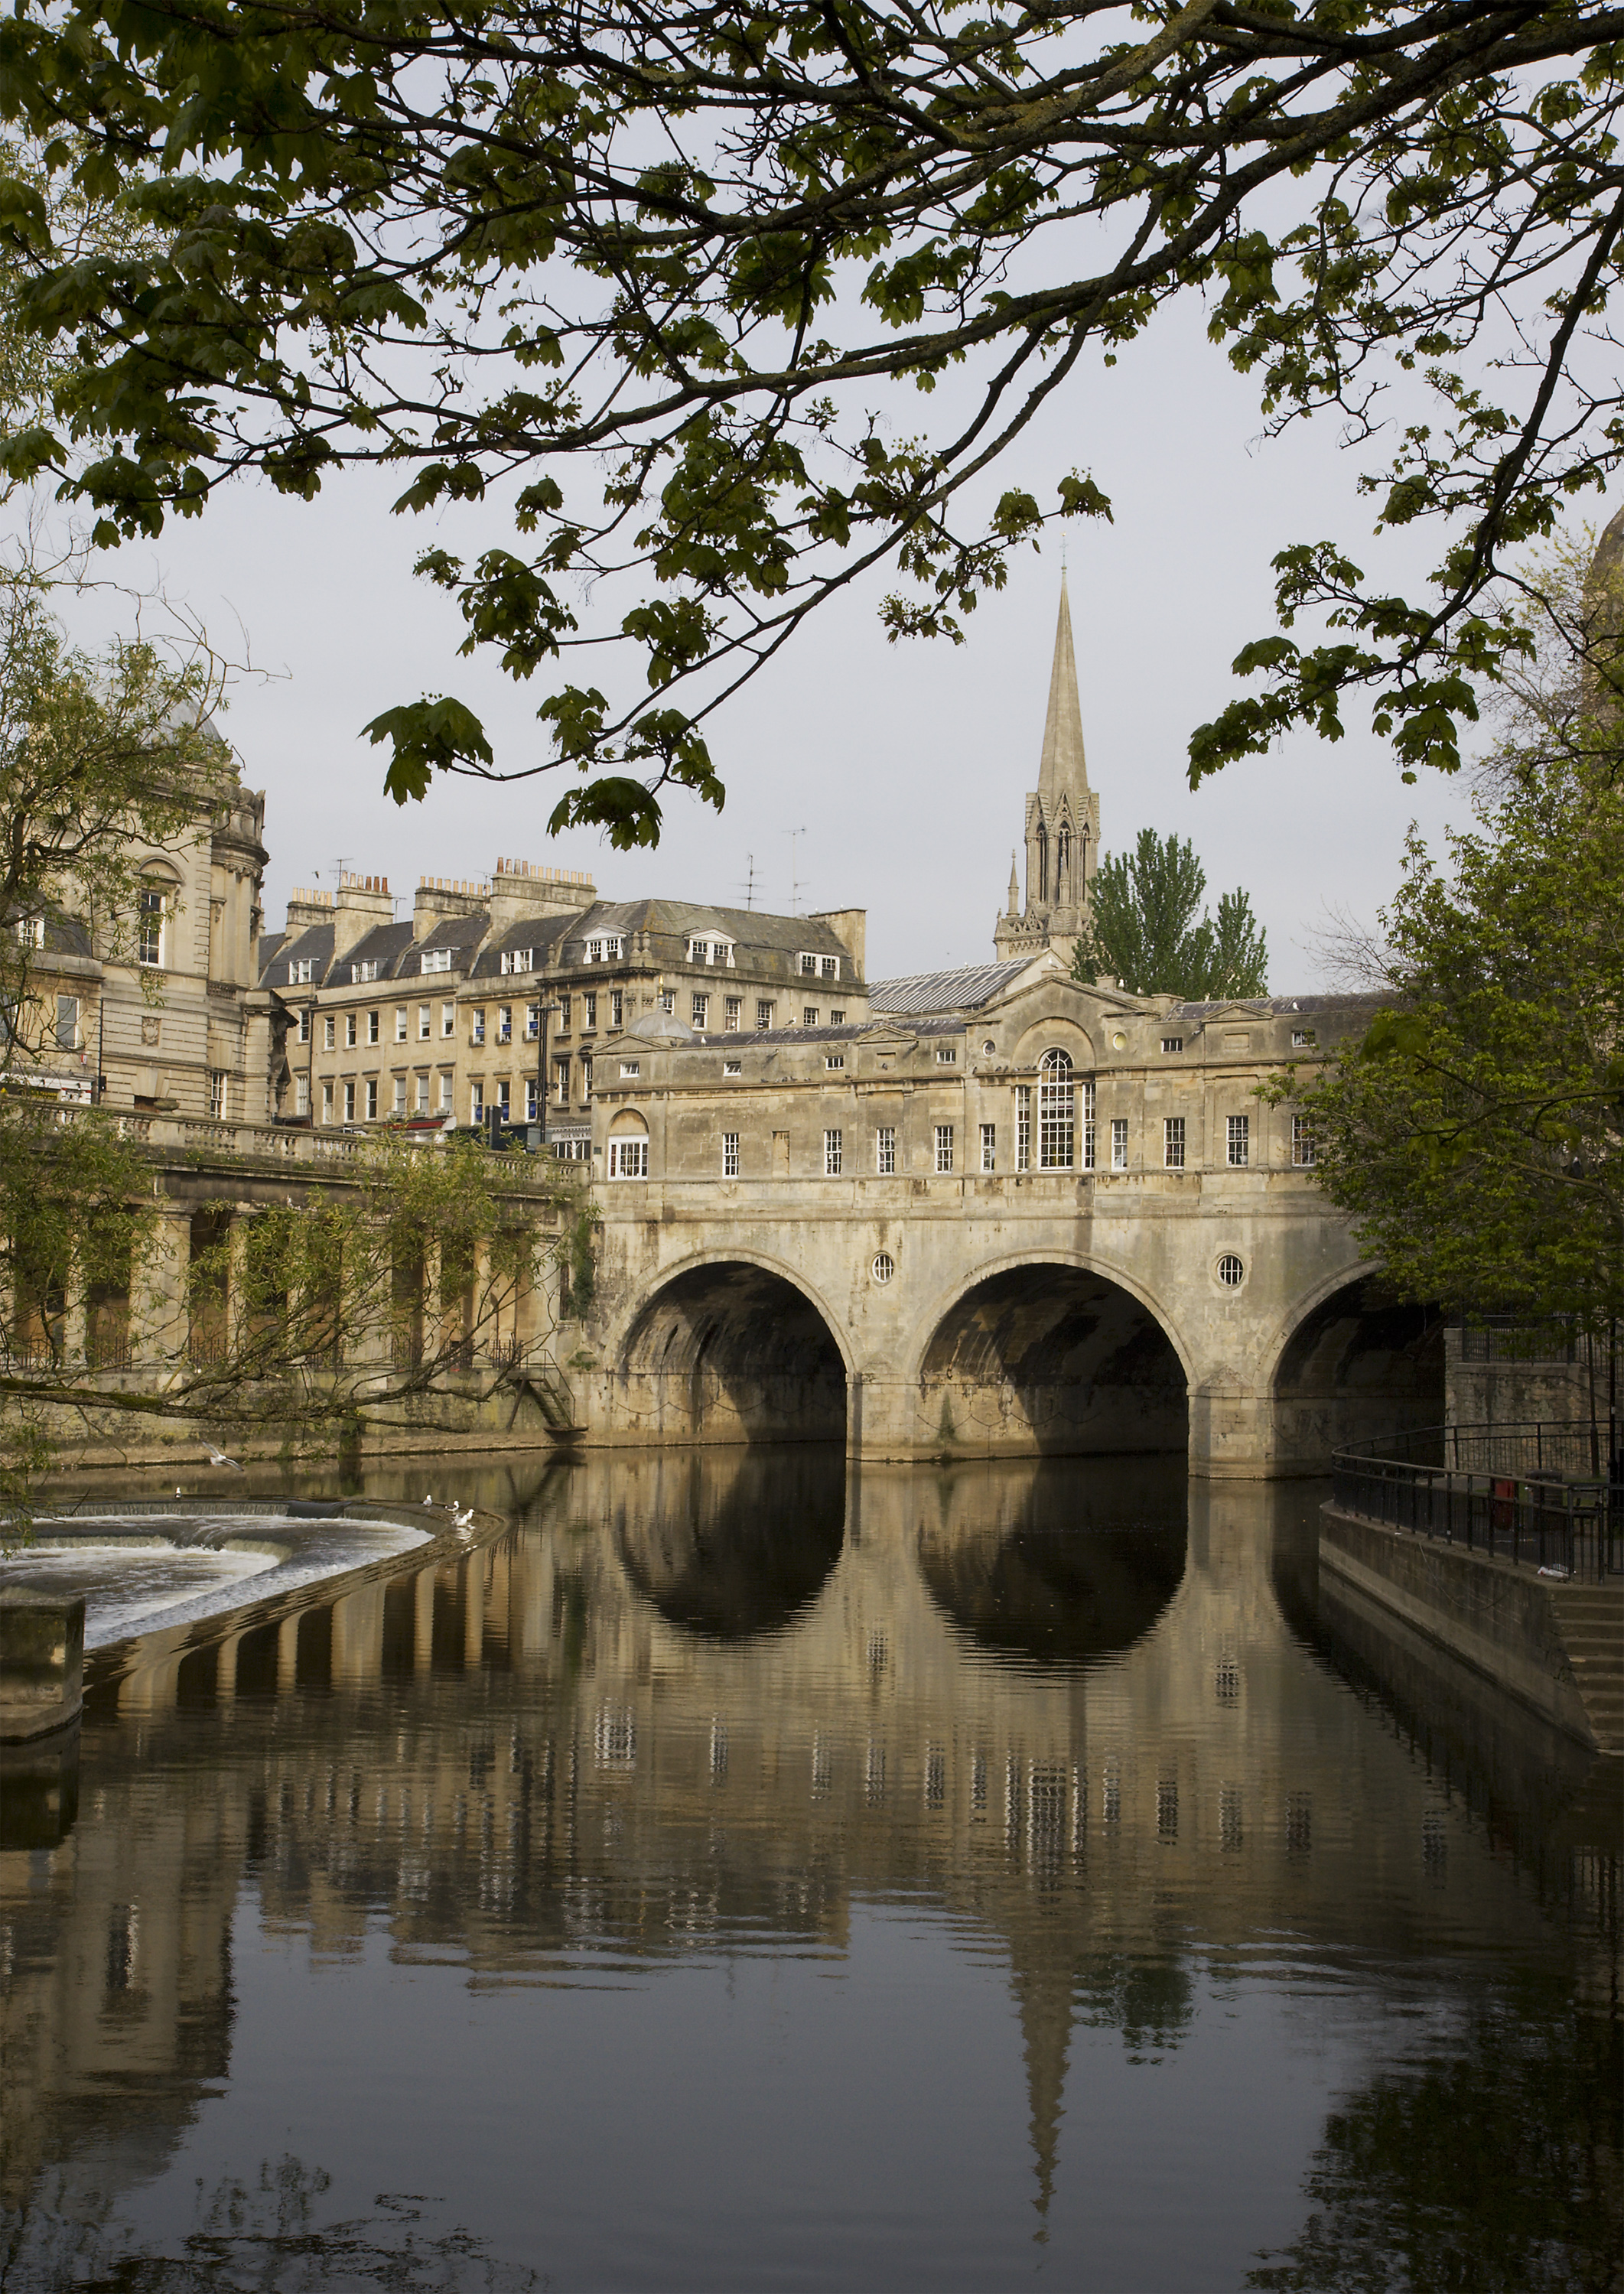 Bath Images file:pulteney bridge, bath 2 - wikimedia commons